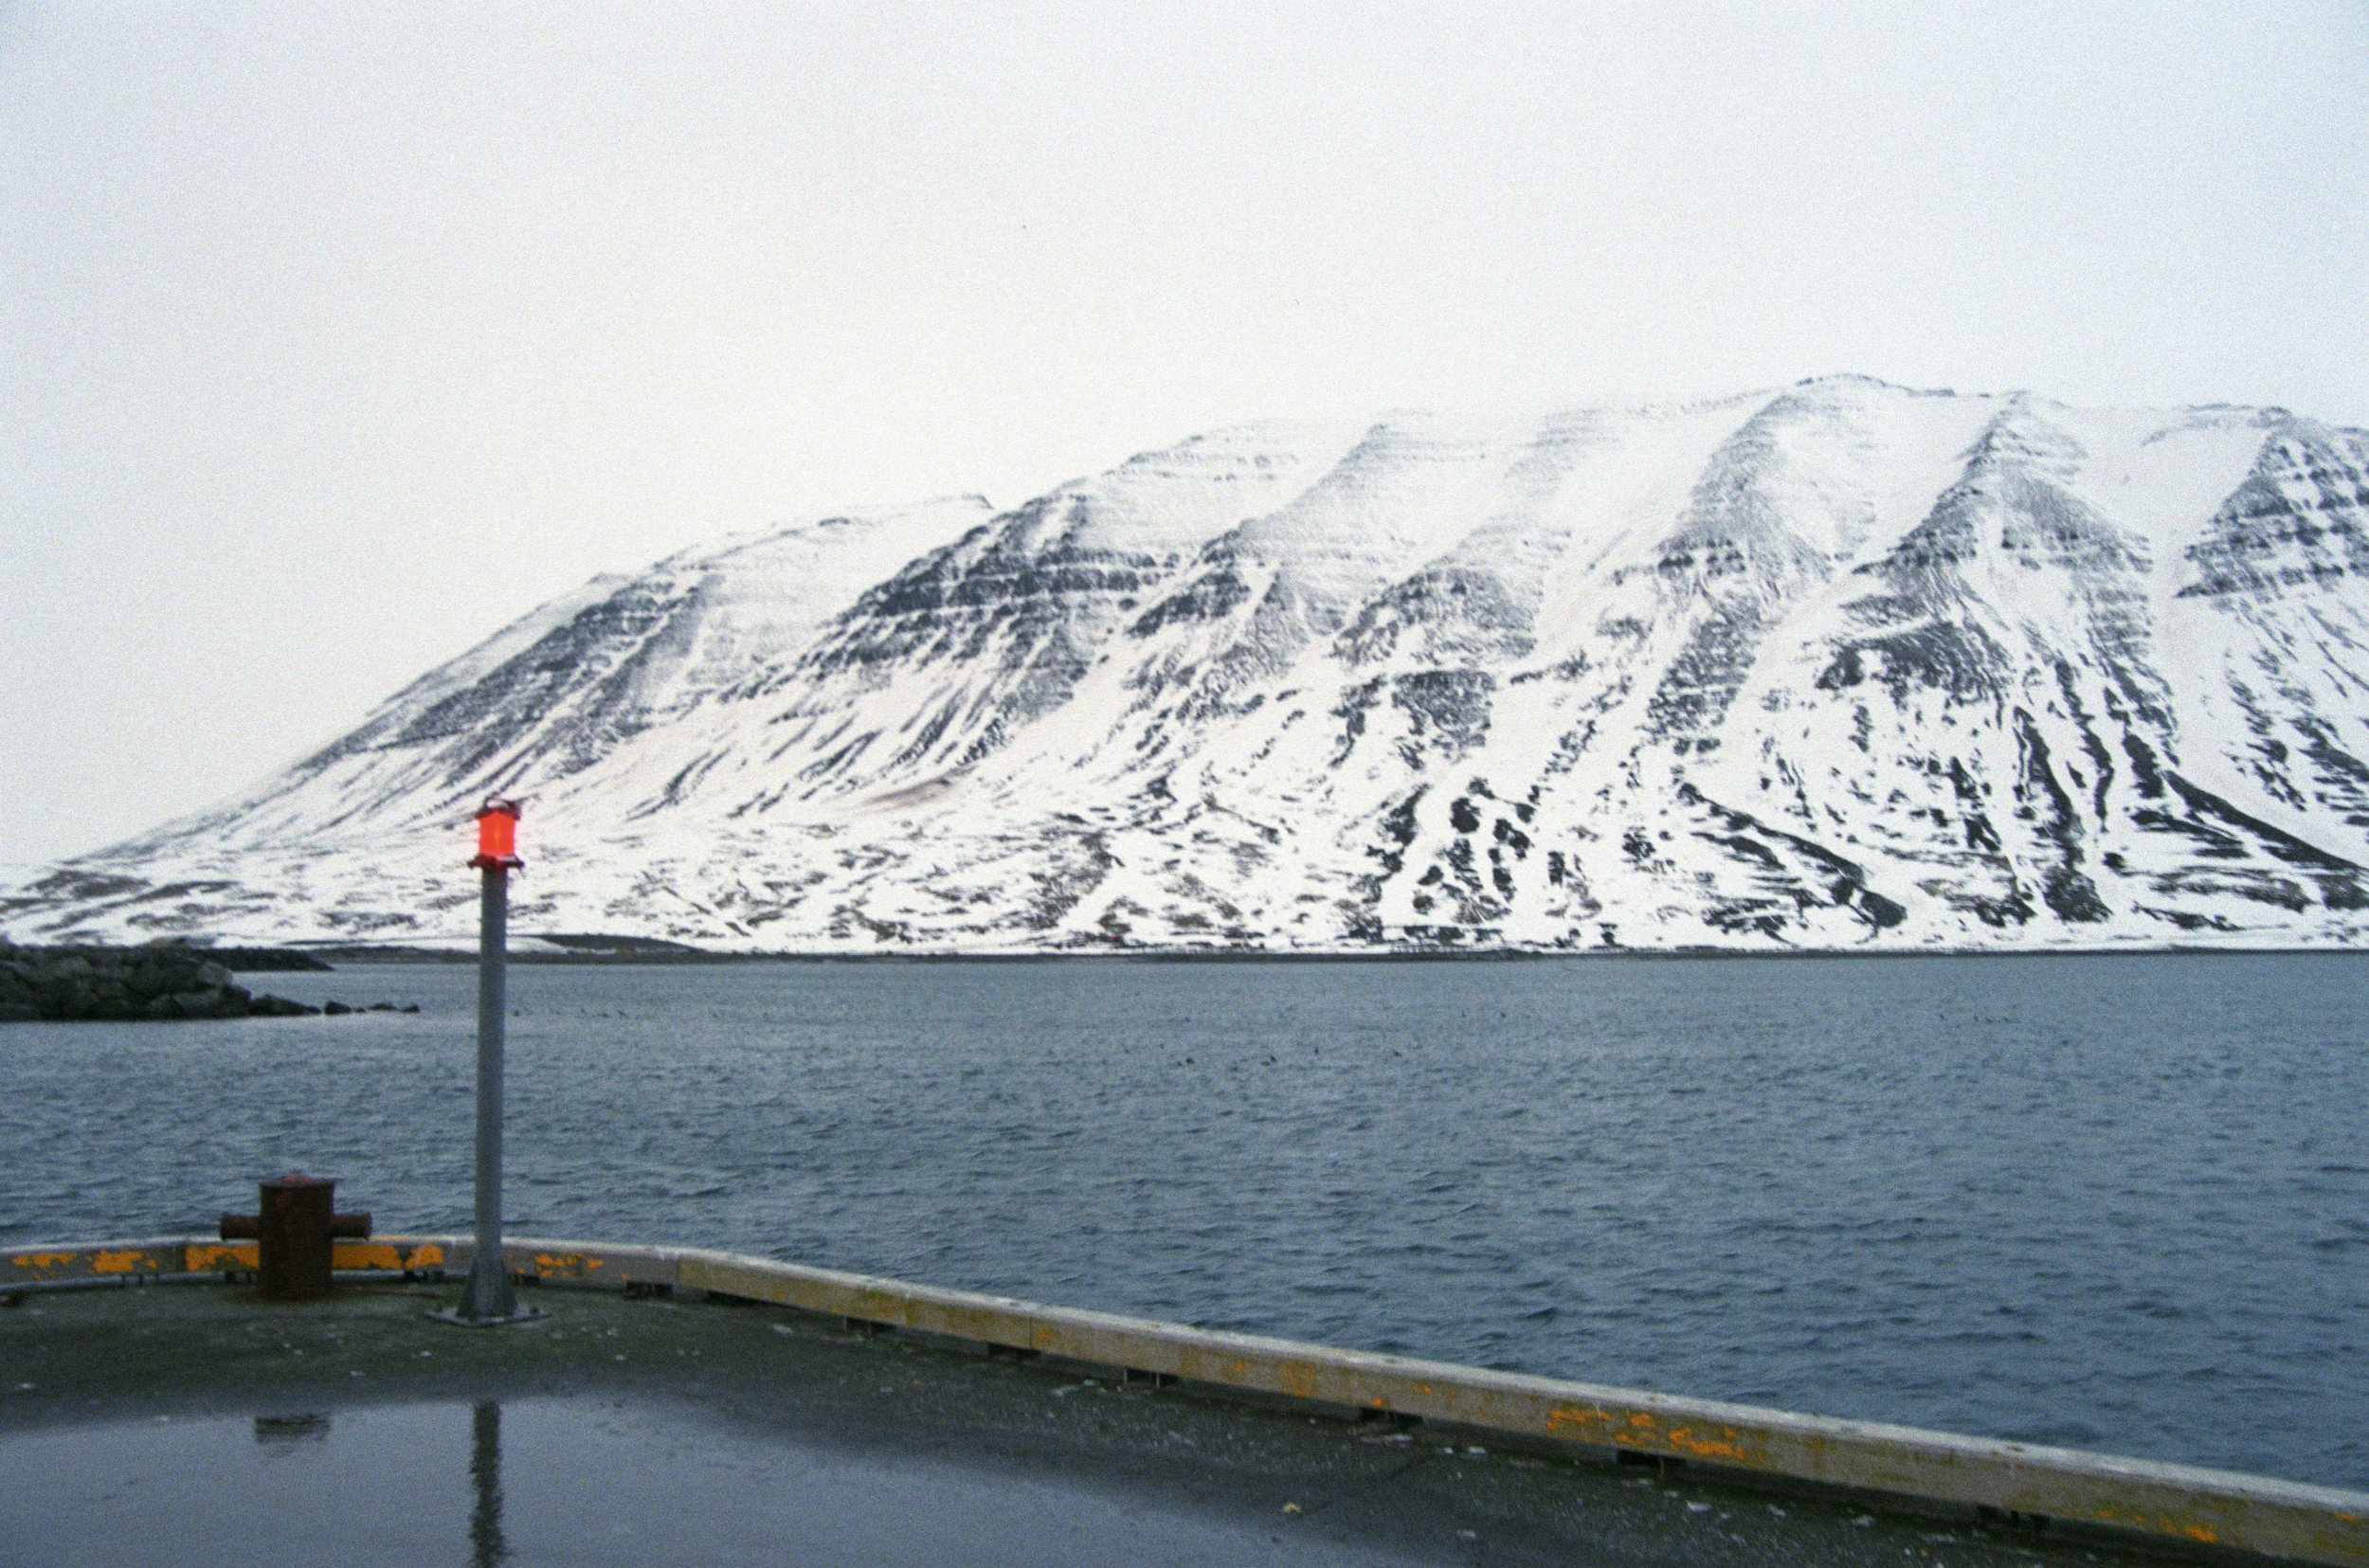 Looking across the fjord